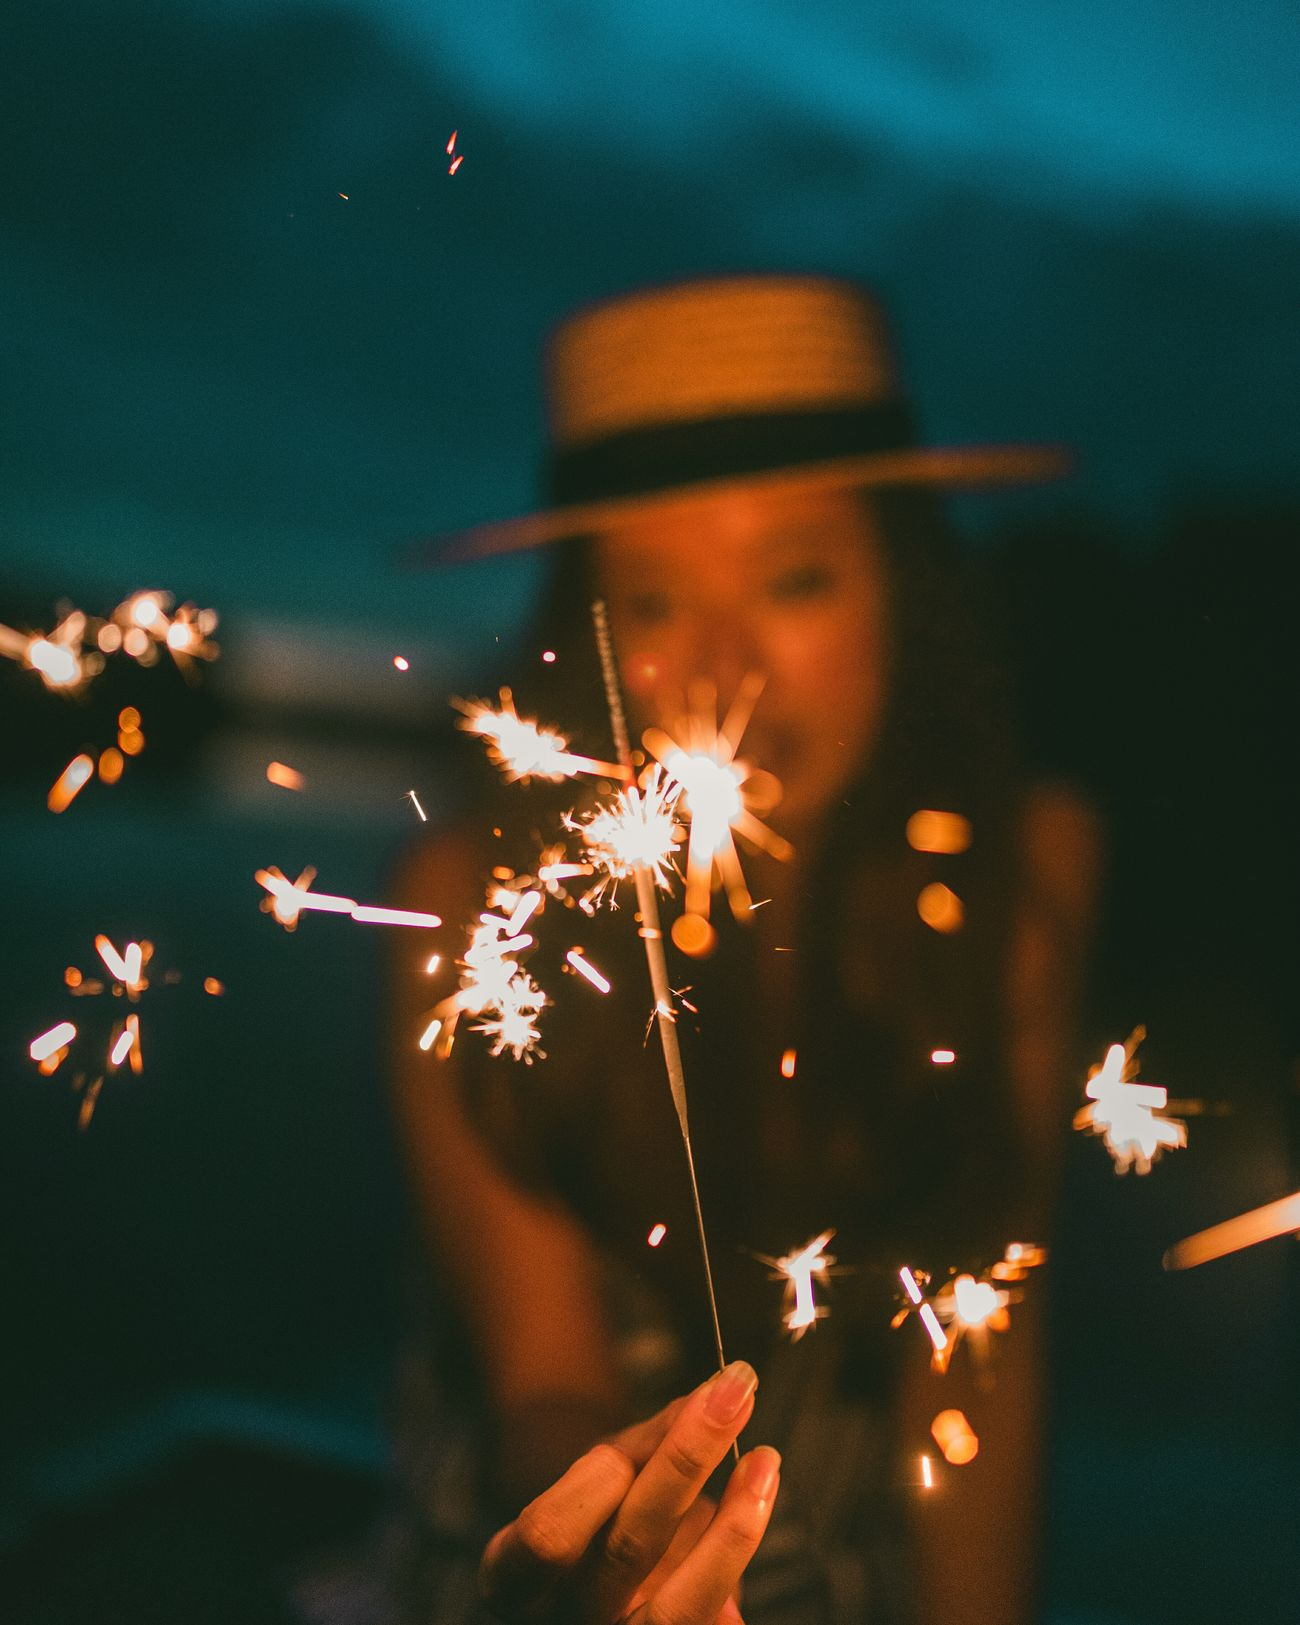 Sparks fly Bokeh Photography Bokeh Sparkle Sparklers Sparks Fire Night Photography Night Lights Light Collection Glitter Outdoors Focus On Foreground Fireworks Light